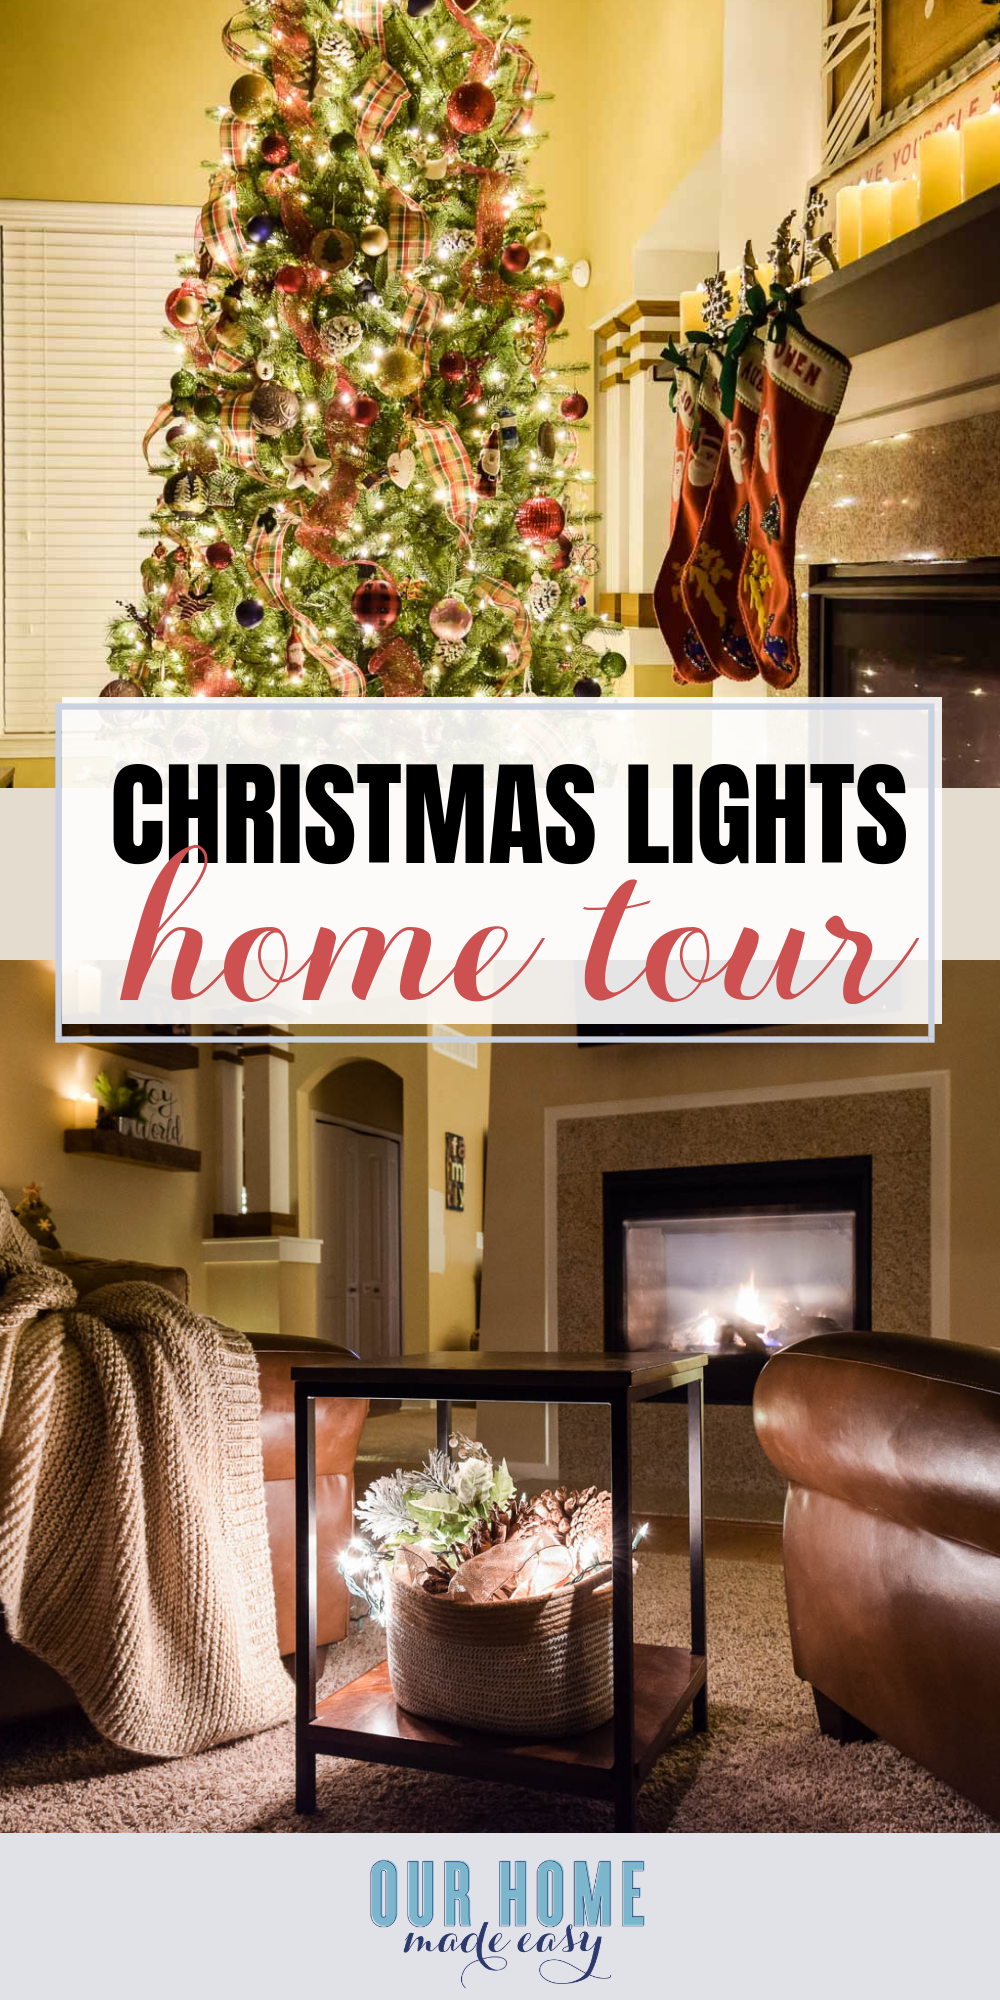 Join us for pretty night time holiday lights at Christmas time! Tour our home and fourteen other home bloggers who are opening up their homes! #christmas #christmastree #holidays #ourhomemadeeasy